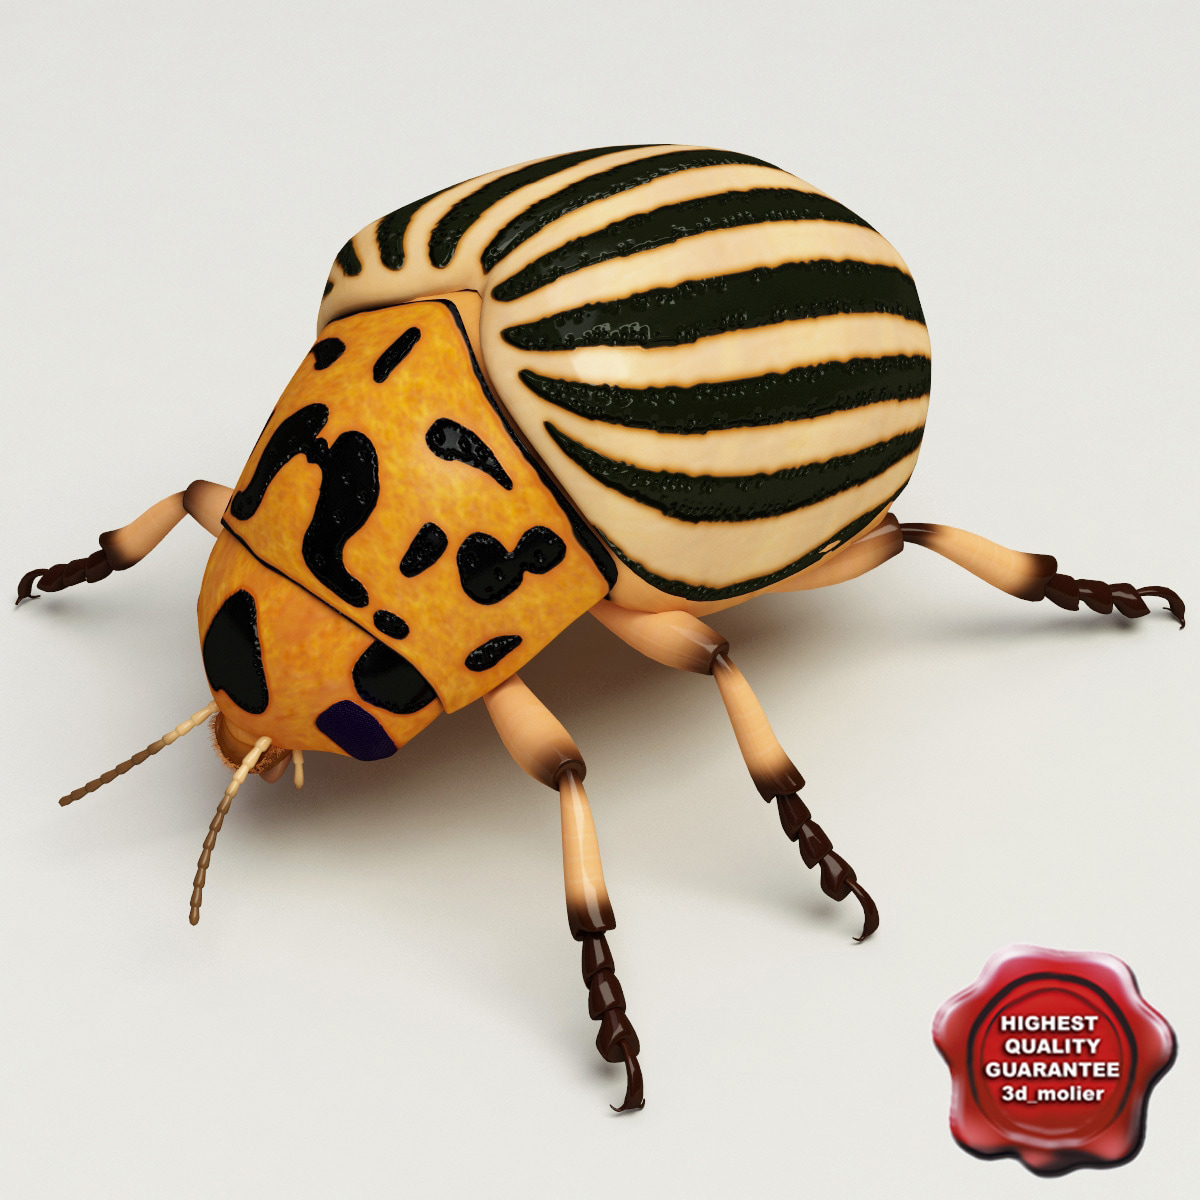 Colorado_Potato_Beetle_00.jpg